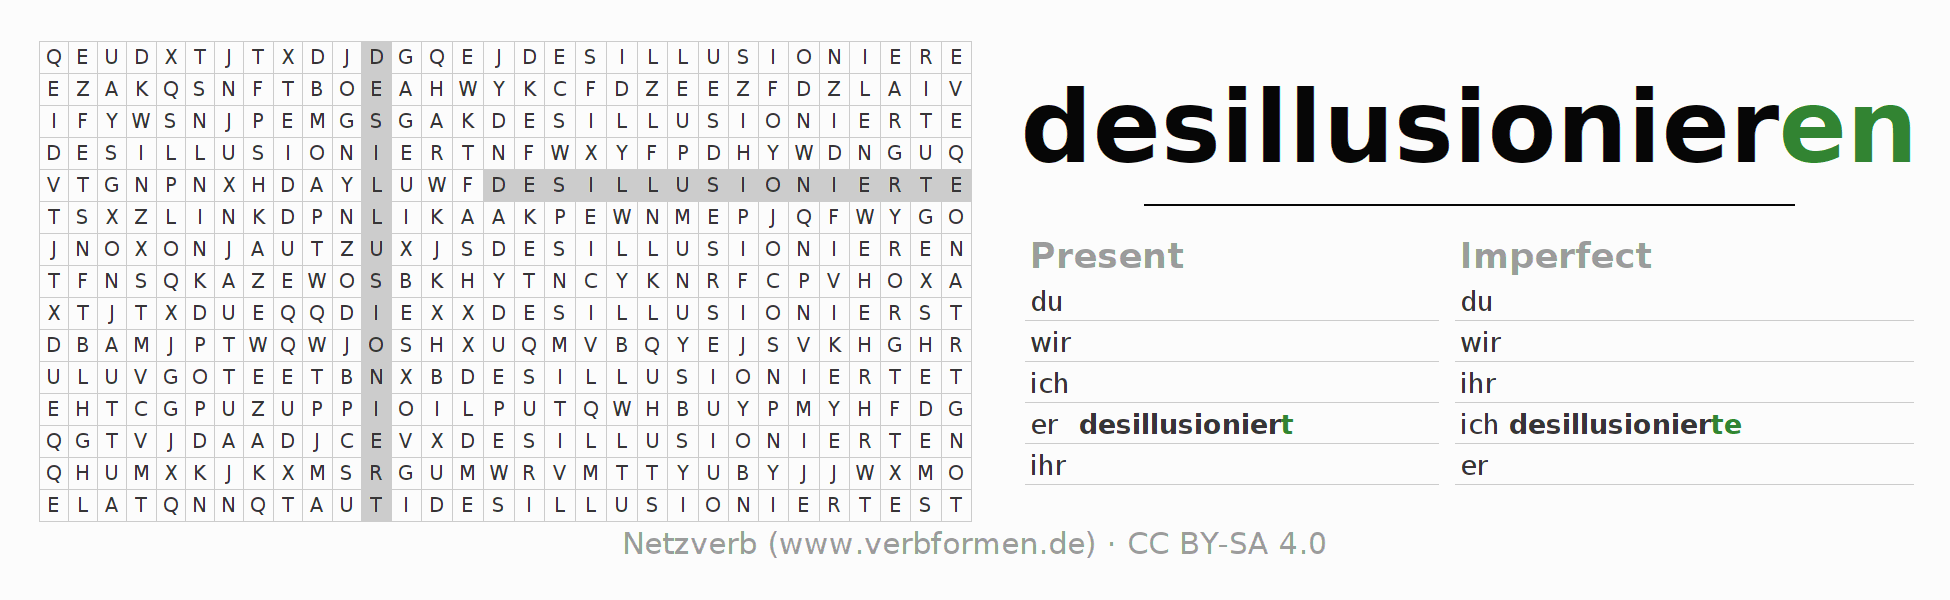 Word search puzzle for the conjugation of the verb desillusionieren